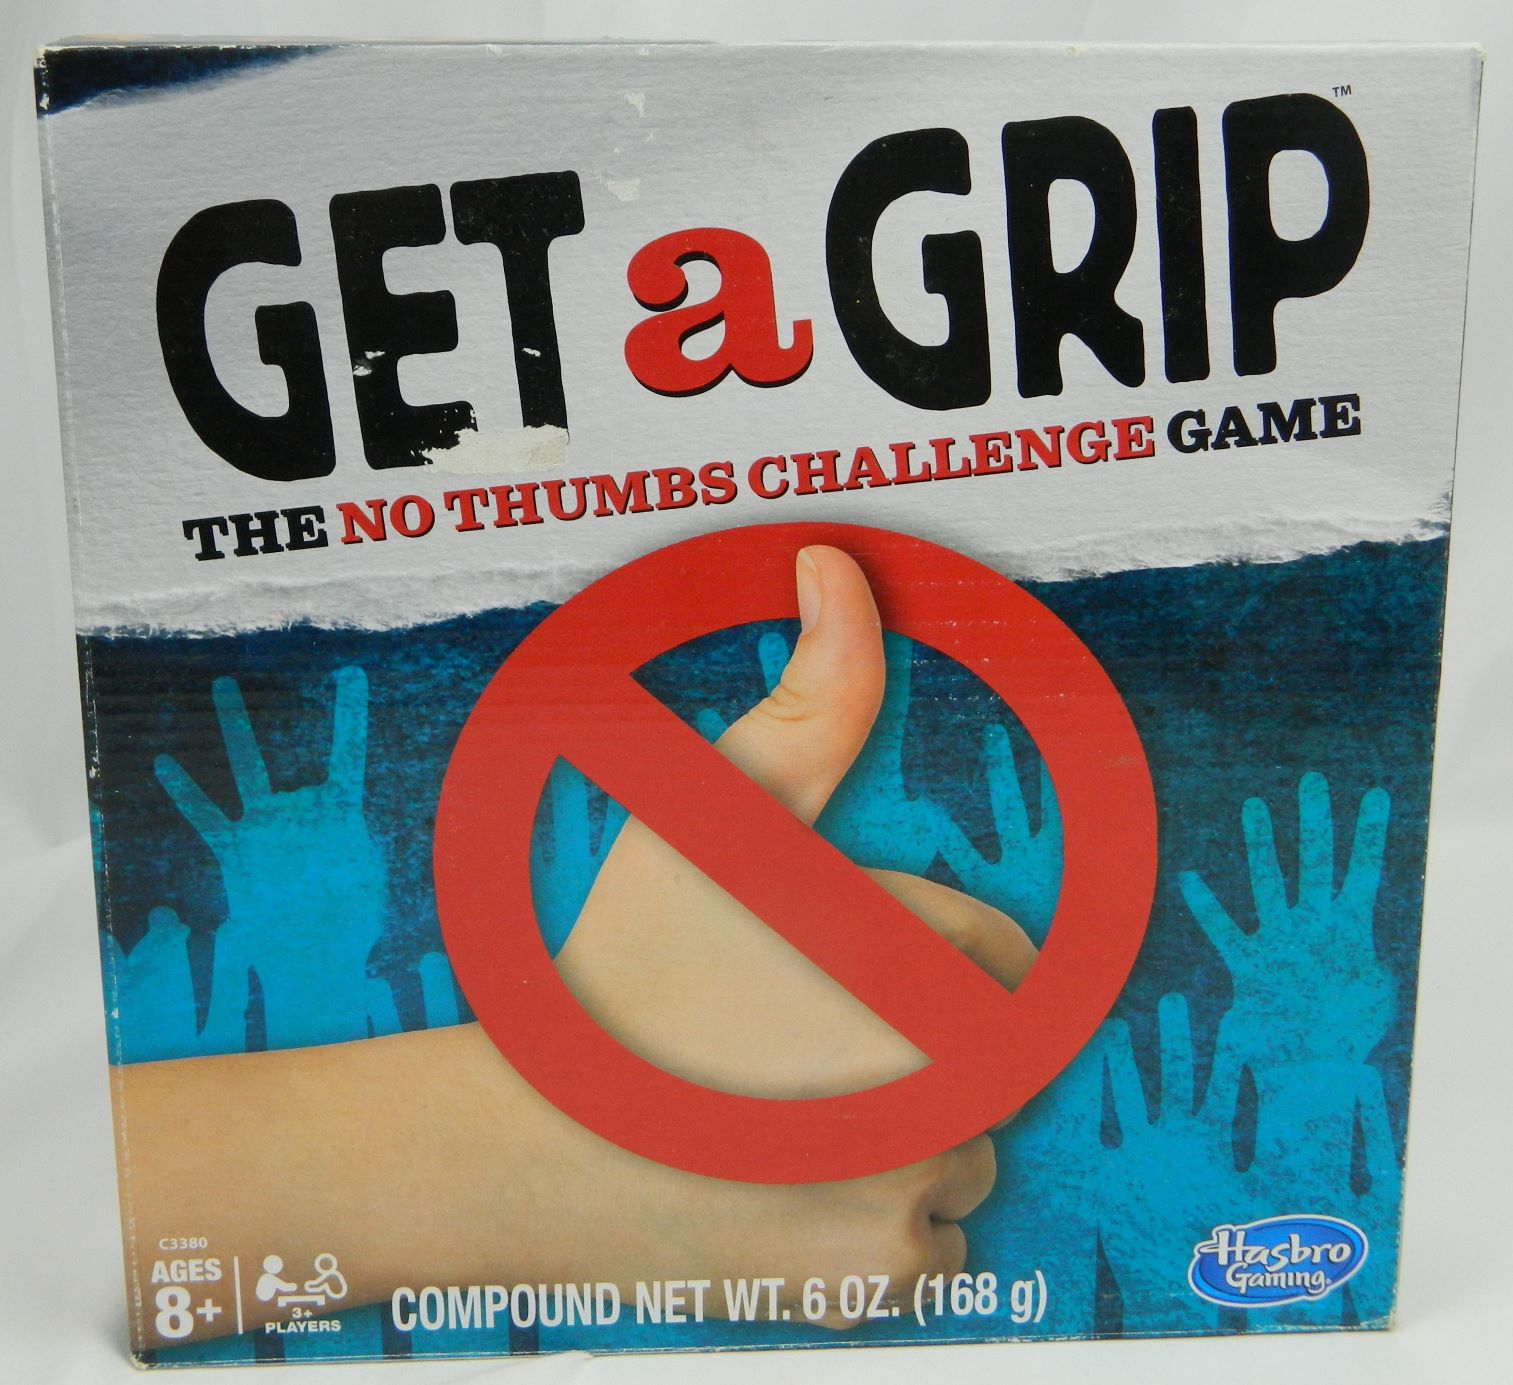 Box for Get A Grip